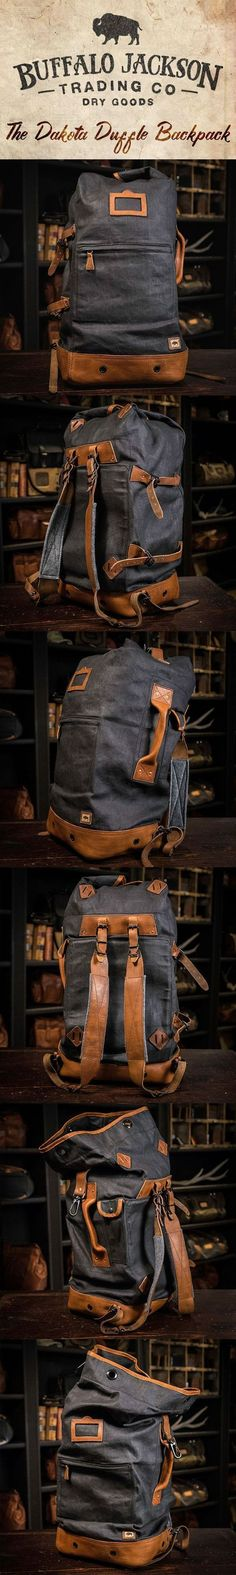 Crafted of waxed canvas and leather with a distressed vintage finish, this military duffle backpack was built to honor the memory of good men and good days. Most durable of canvases, and high quality leather. Plenty of room for all your work, sport, or travel products in this duffel. Great gift for him.